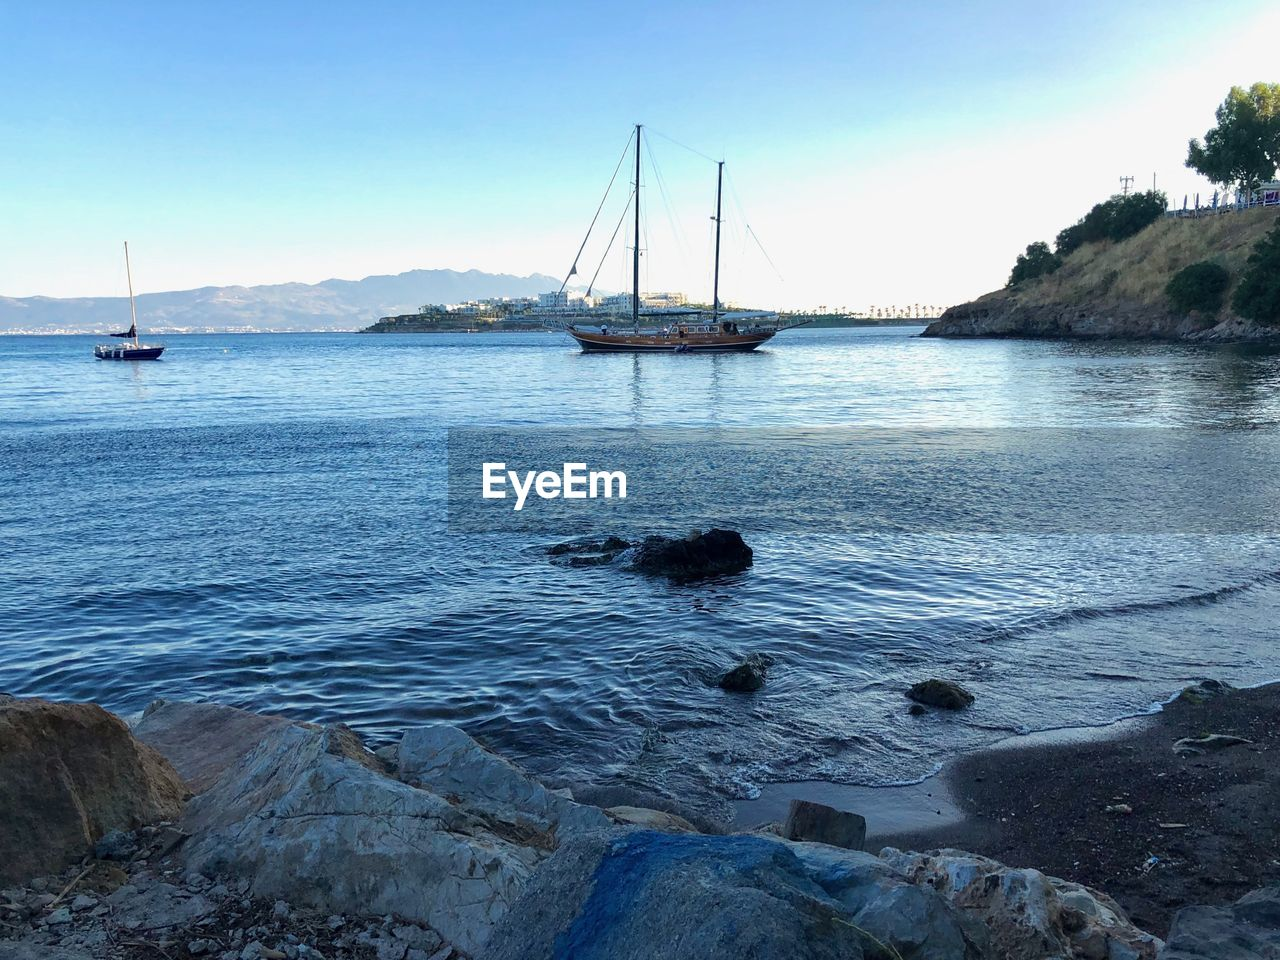 water, nautical vessel, sea, transportation, mode of transportation, sky, sailboat, rock, solid, rock - object, nature, beauty in nature, tranquil scene, scenics - nature, tranquility, pole, mast, beach, day, no people, outdoors, bay, yacht, marina